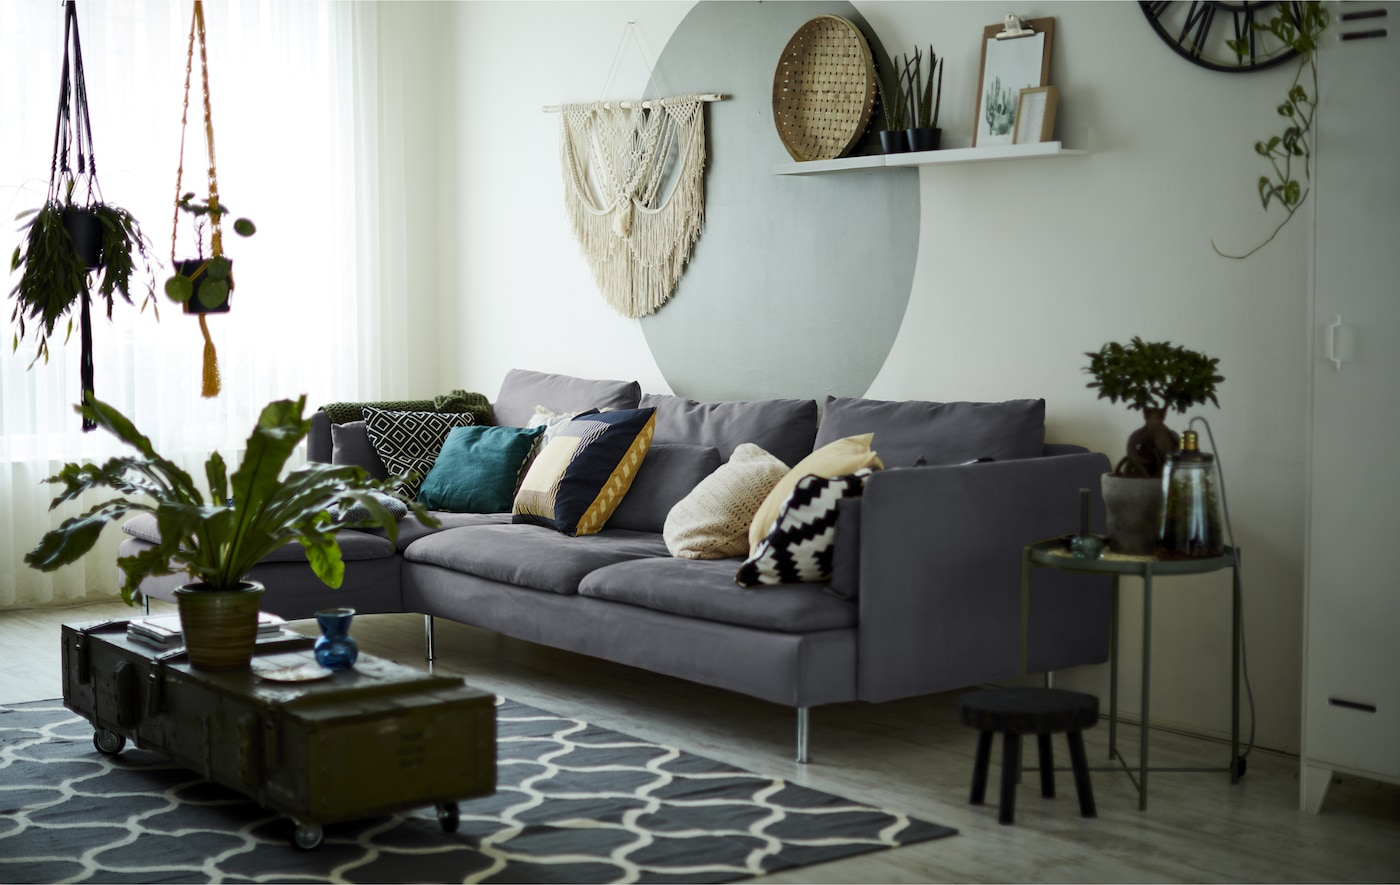 A living room with gray sofa and indoor plants.